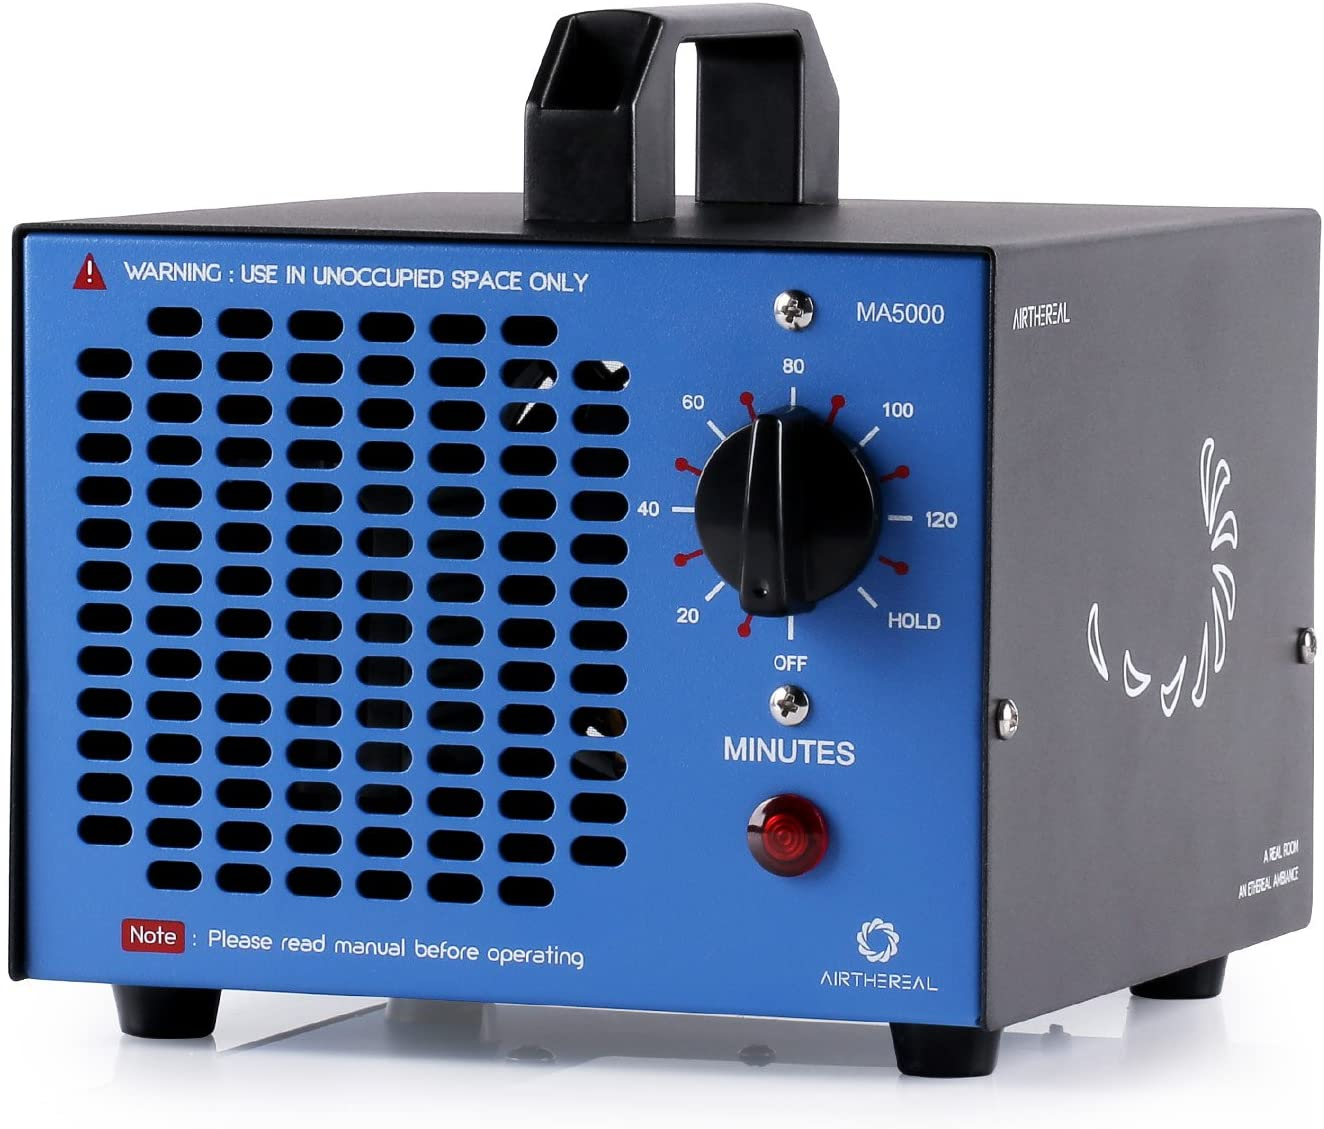 Amazon.com: Airthereal MA5000 Commercial Ozone Generator, 5000mg/h O3 Machine Home Air Ionizers Deodorizer for Rooms, Smoke, Cars and Pets, Blue : Home & Kitchen